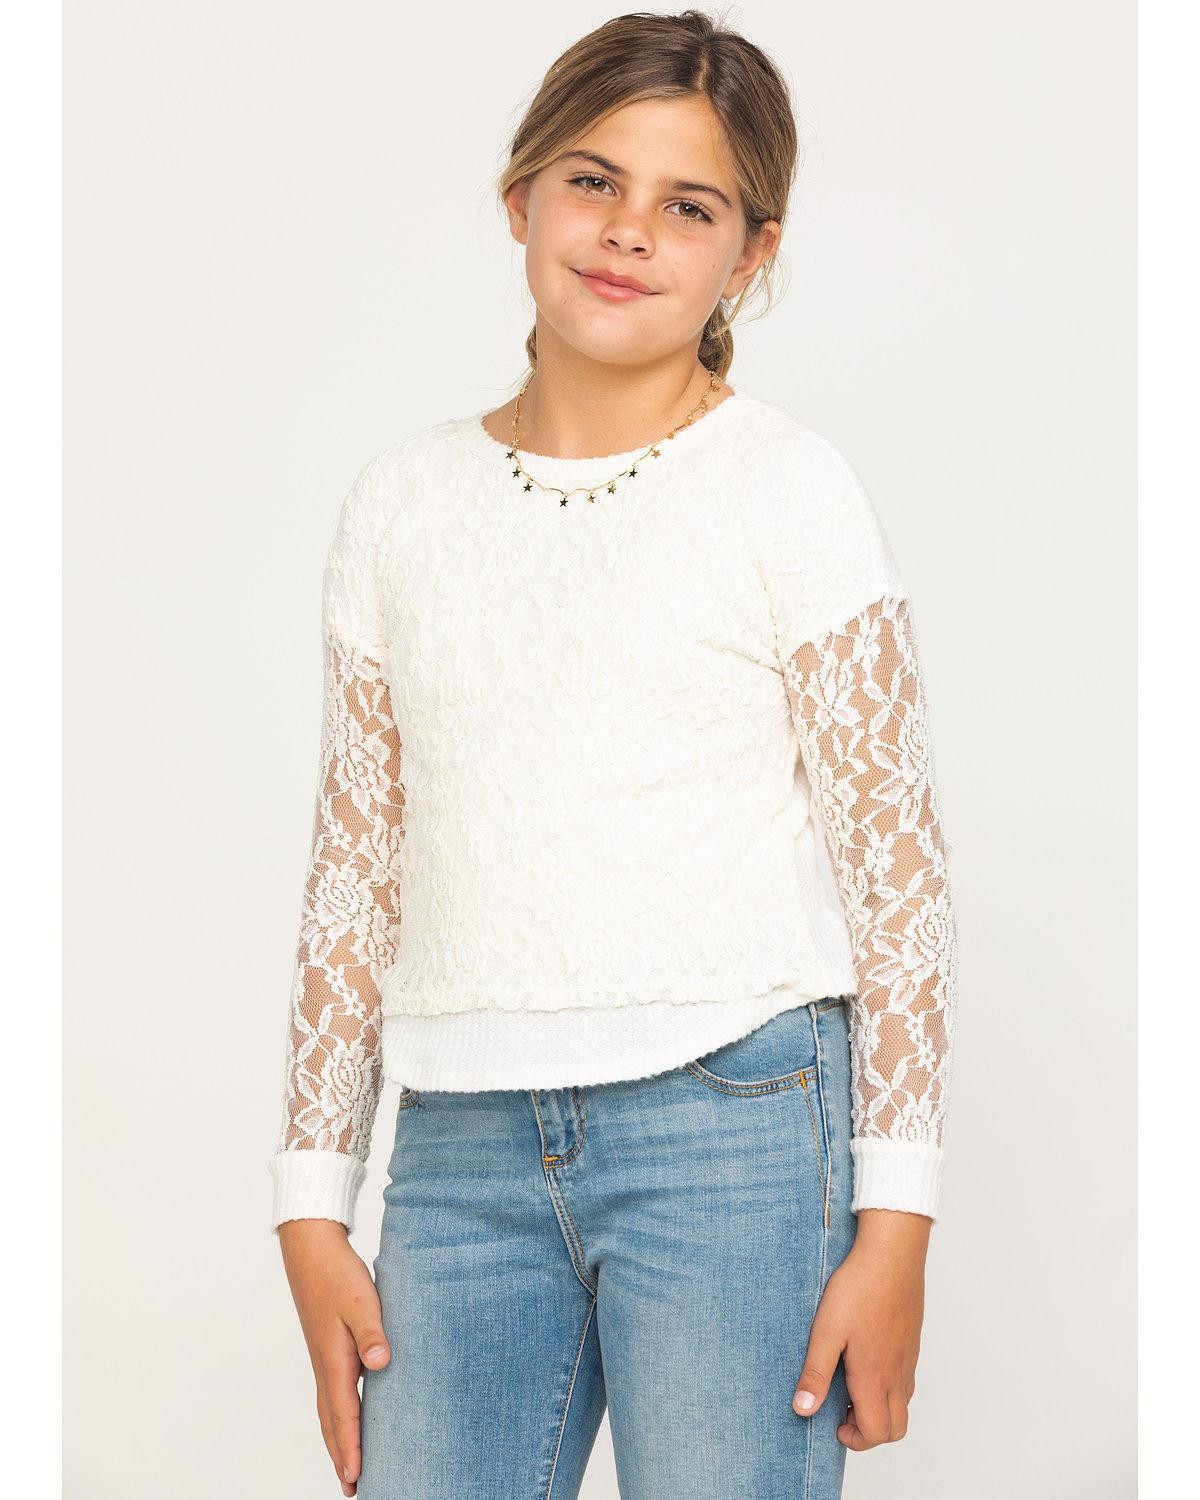 Girls' Clearance Clothing